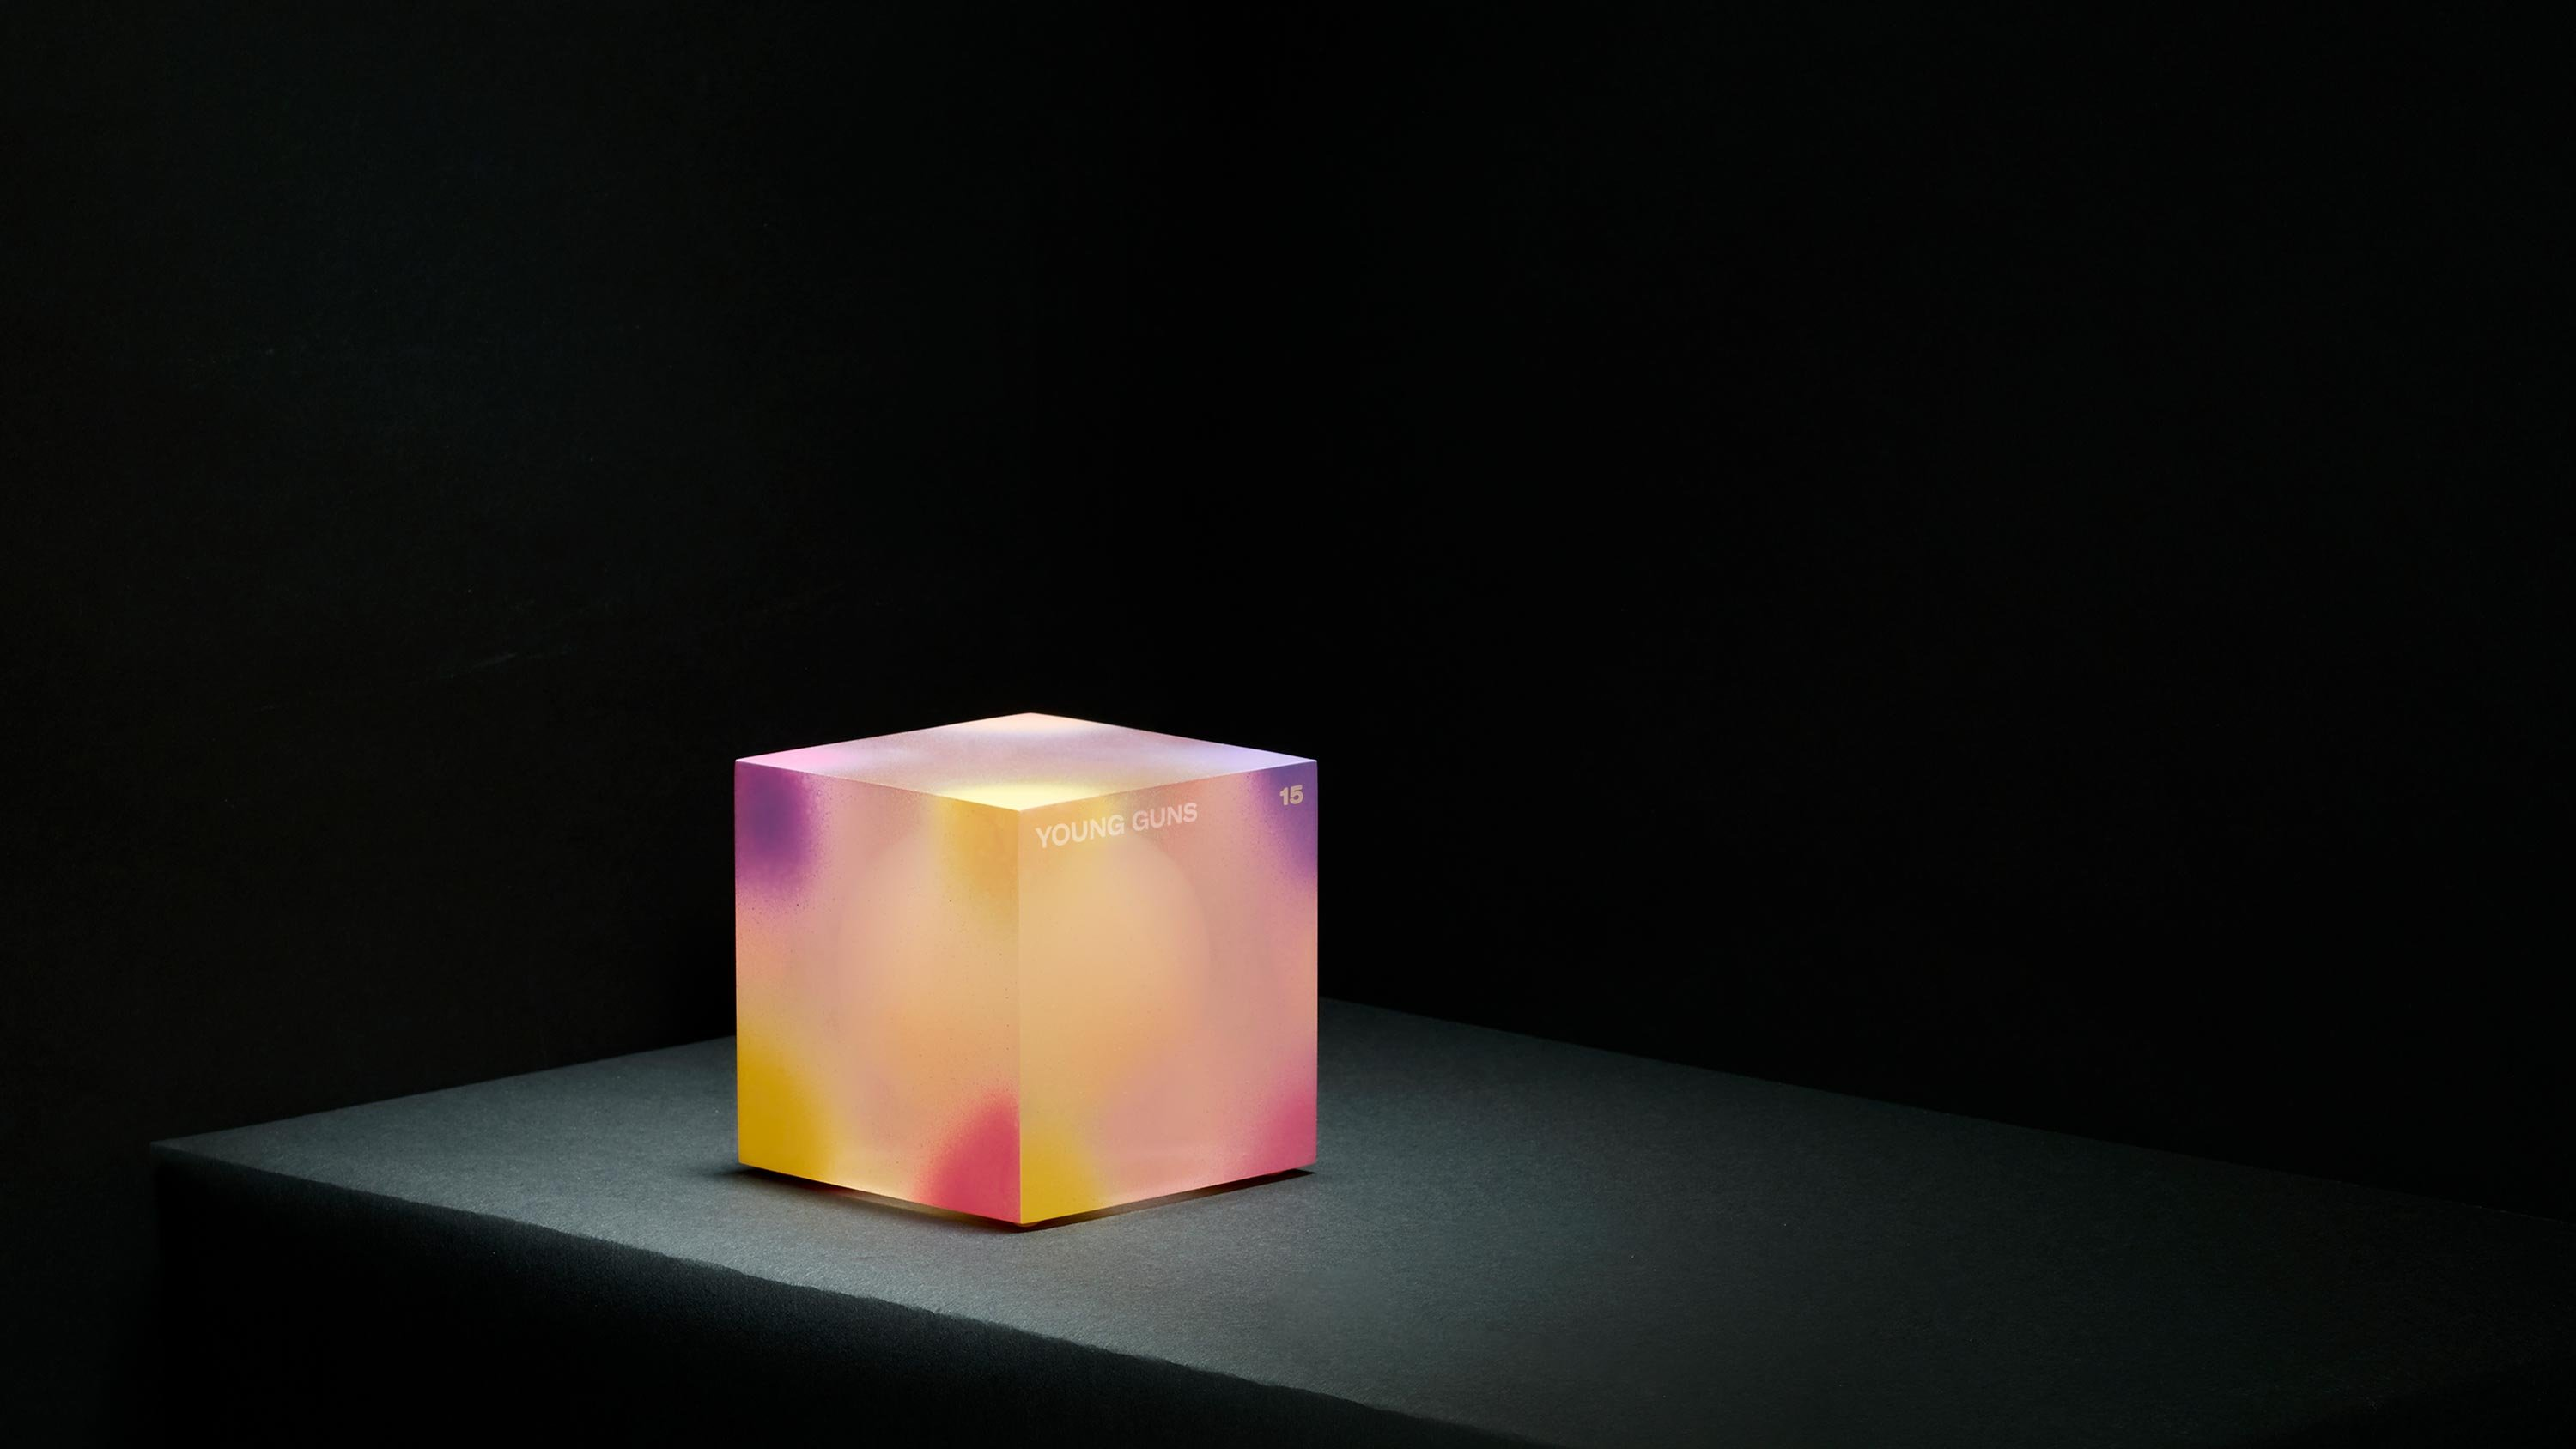 Young Guns Cube award, concept and design by RoAndCo studio